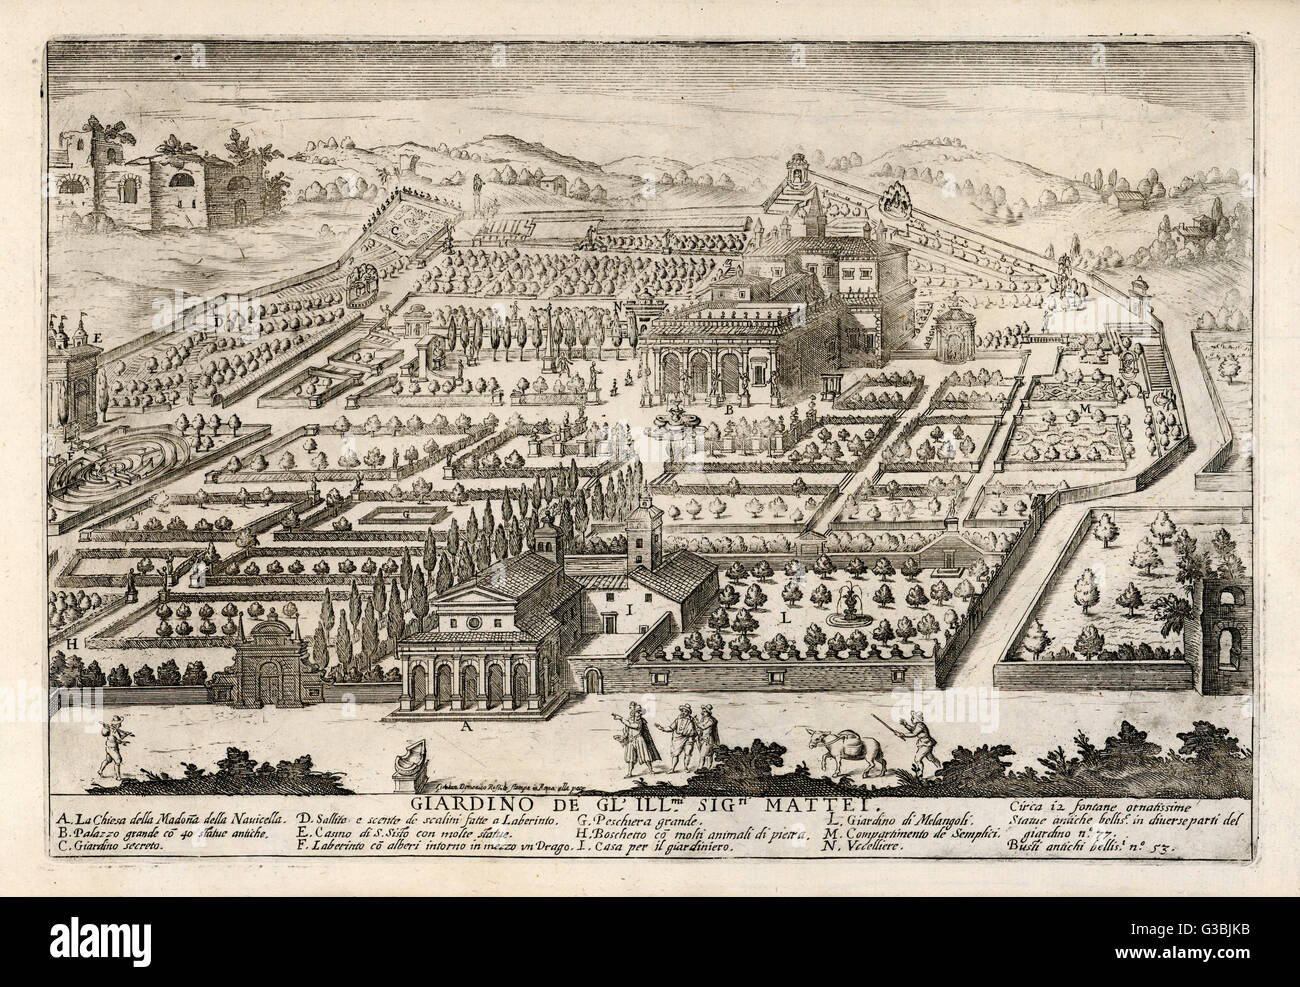 VILLA MATTEI OR VILLA COELI MONTANA built in 1582 by Ciriaco Mattei showing  a series of formal Italian gardens & buildings including a maze, ...